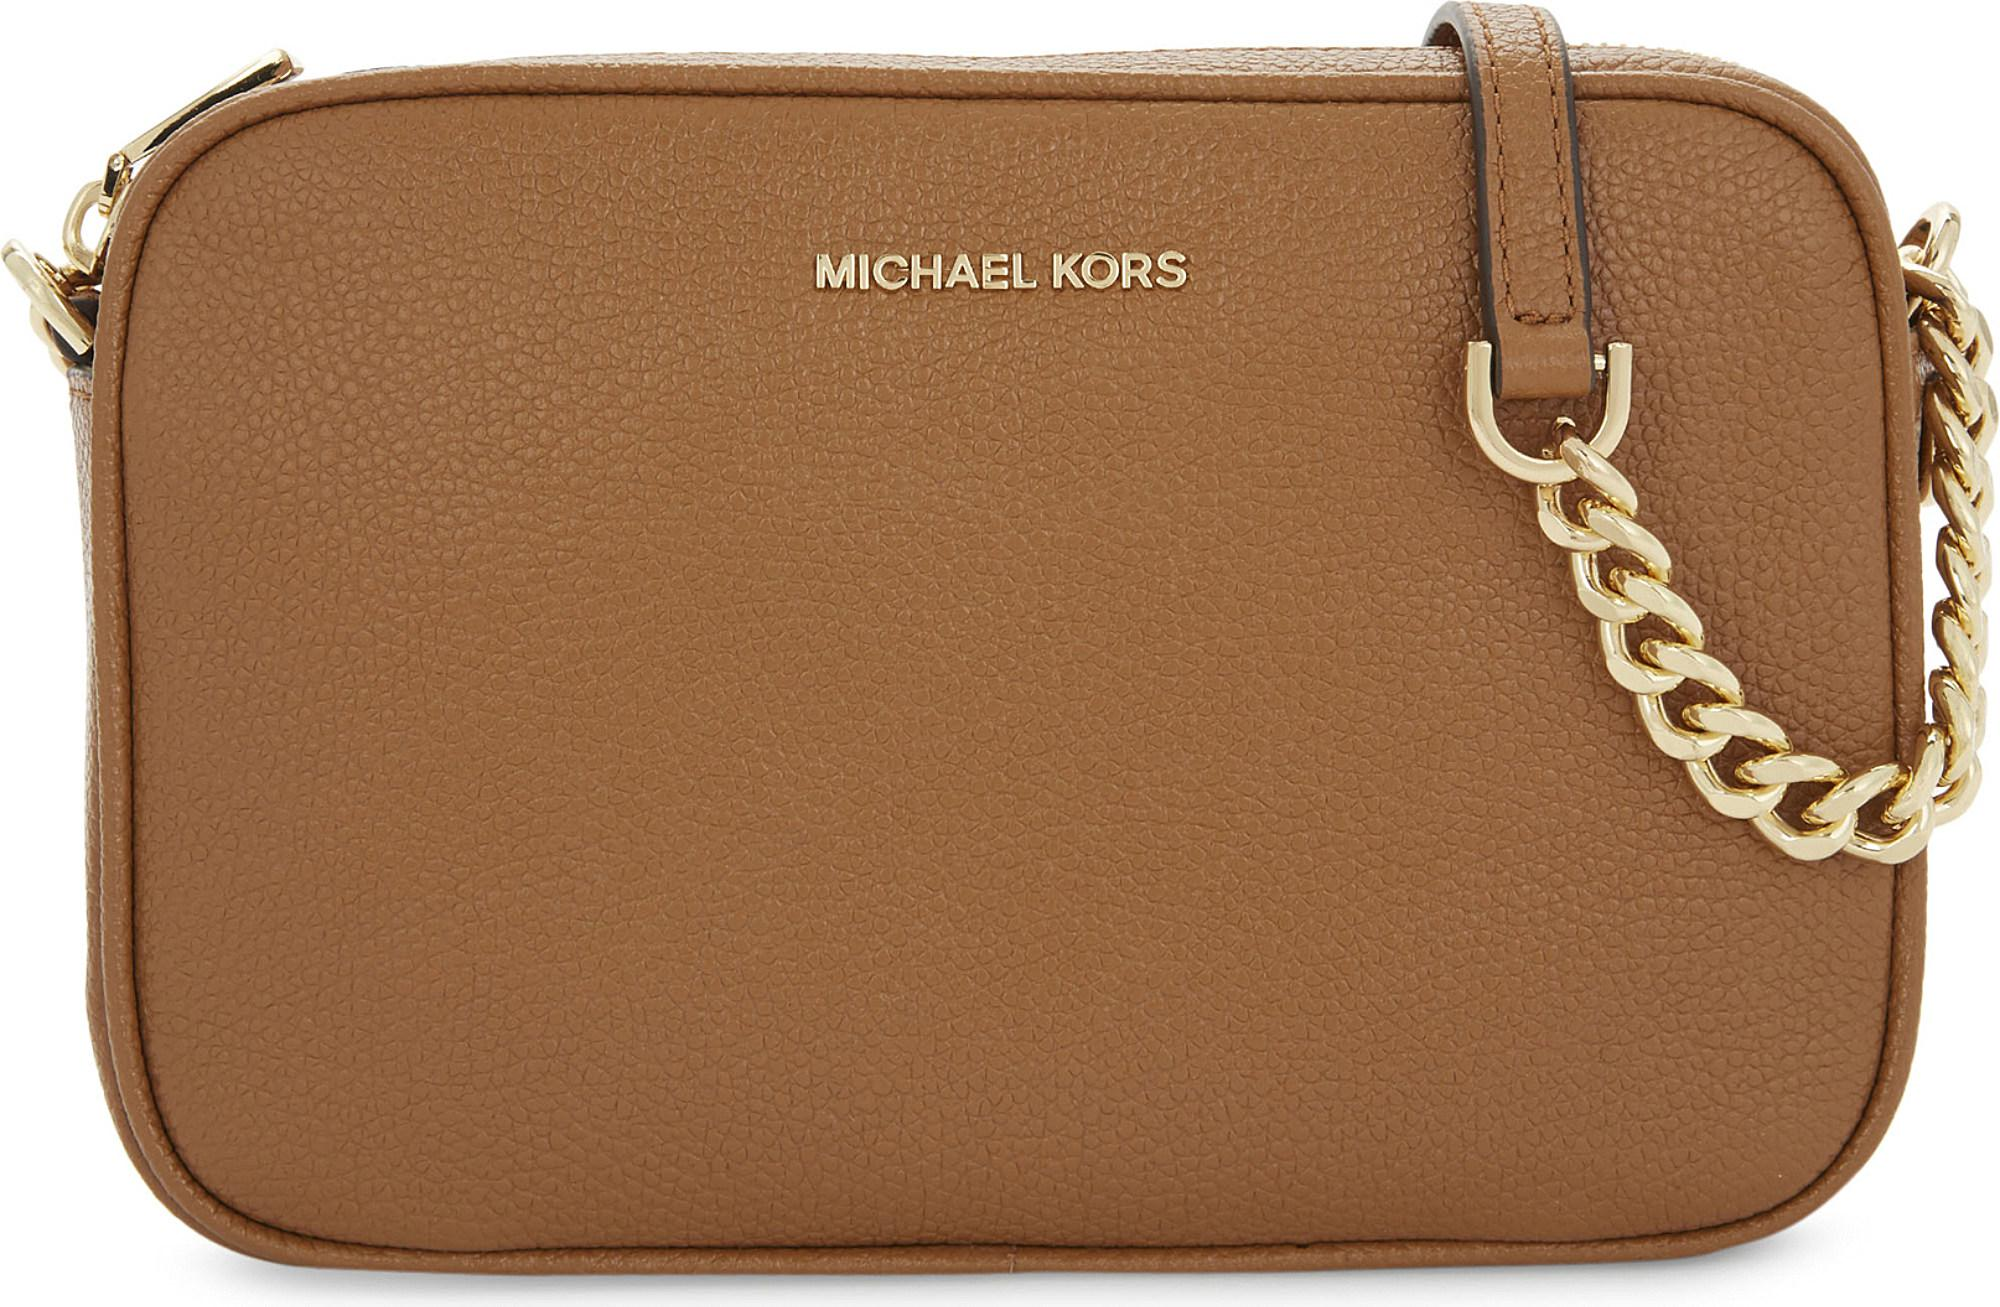 96fc768ad4c4 MICHAEL Michael Kors Ginny Medium Grained Leather Cross-body Bag in ...